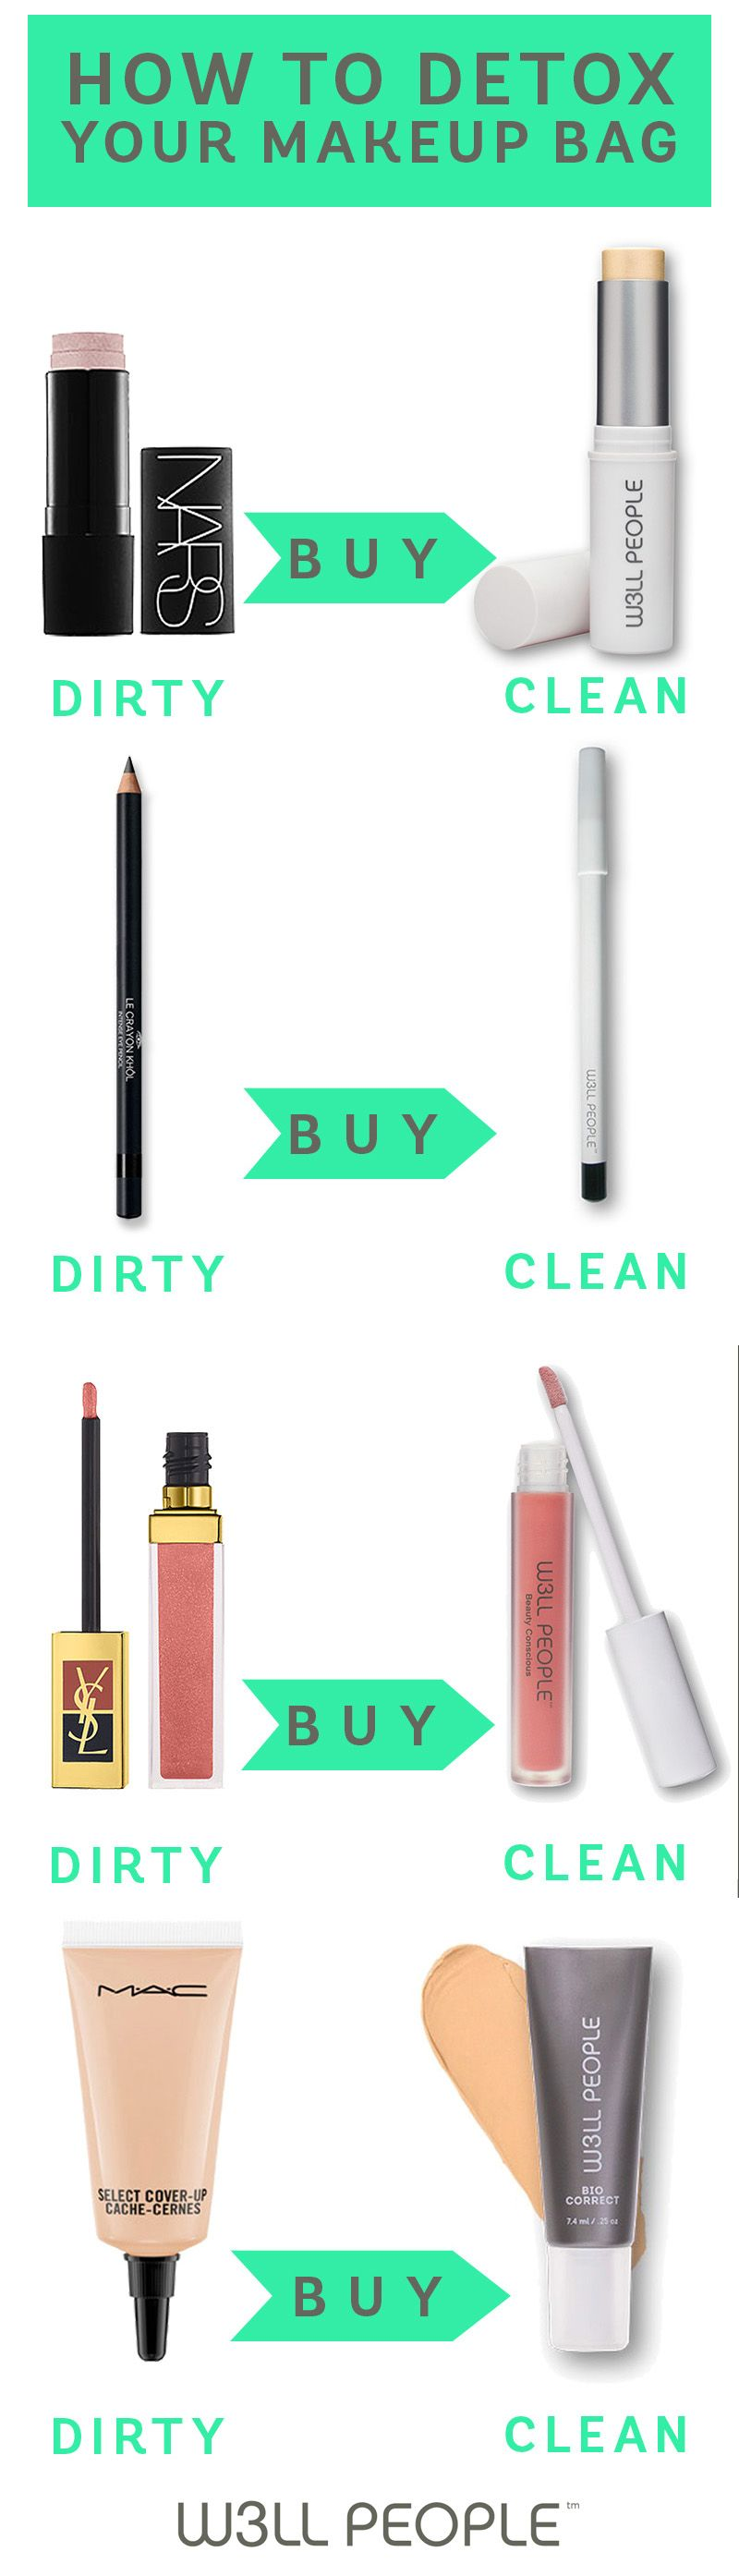 How to Detox your Makeup Bag using nontoxic, vegan